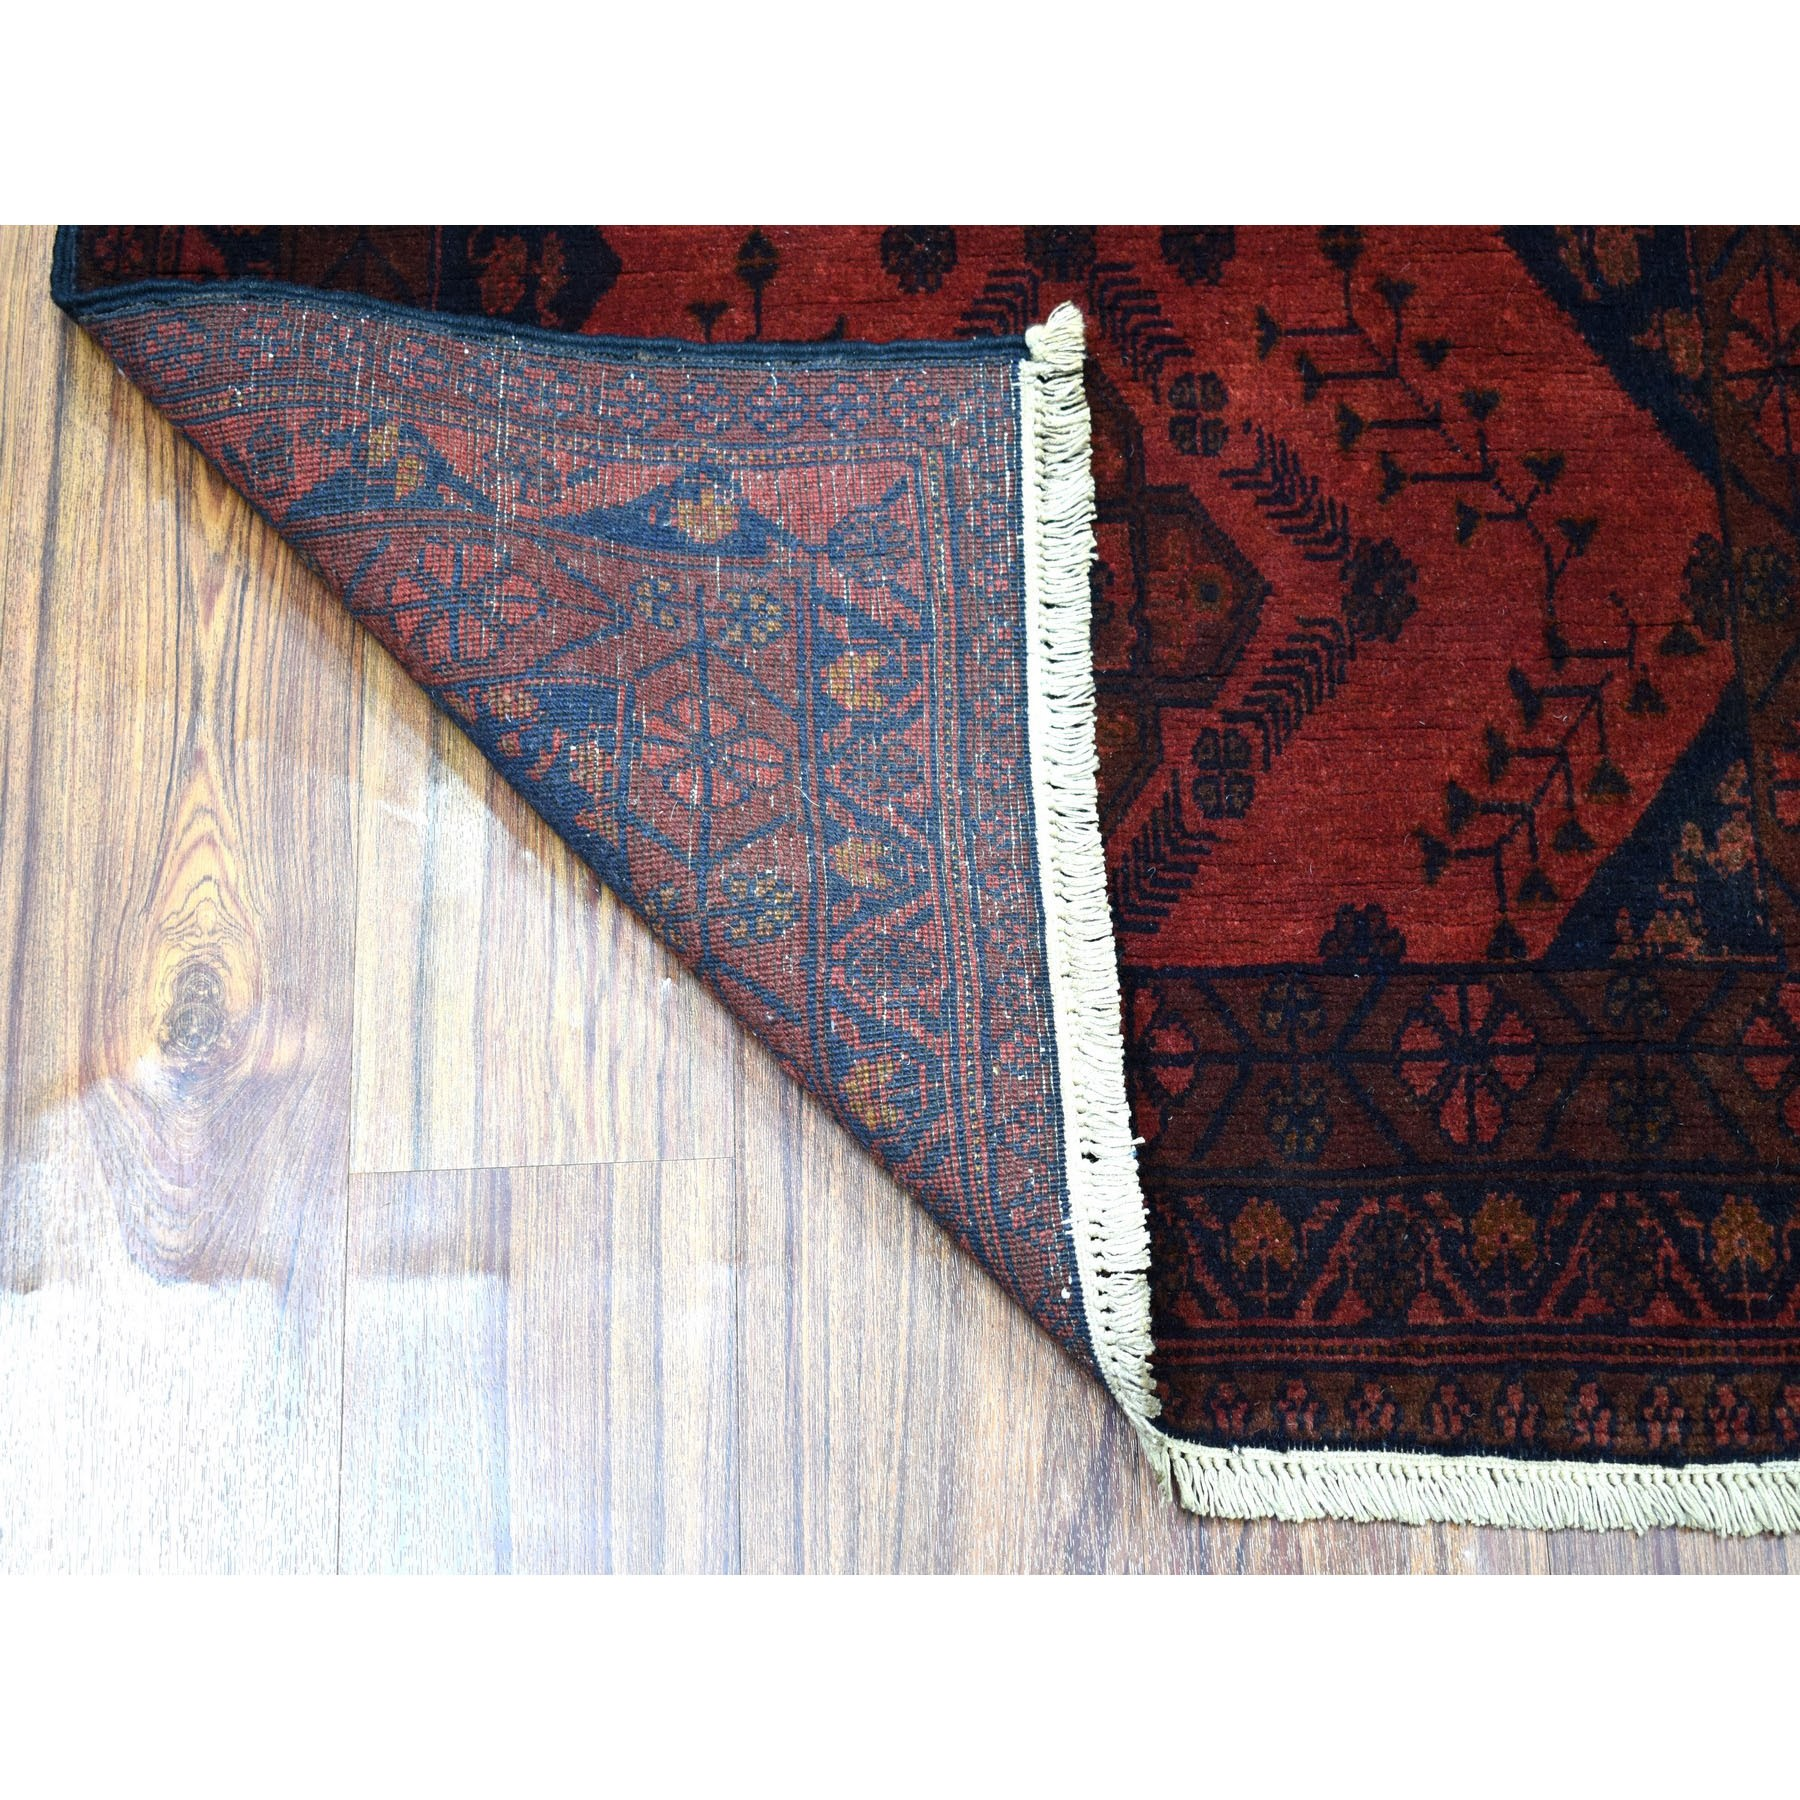 3'x6' Deep and Saturated Red Geometric Afghan Andkhoy Runner Pure Wool Hand Woven Oriental Rug